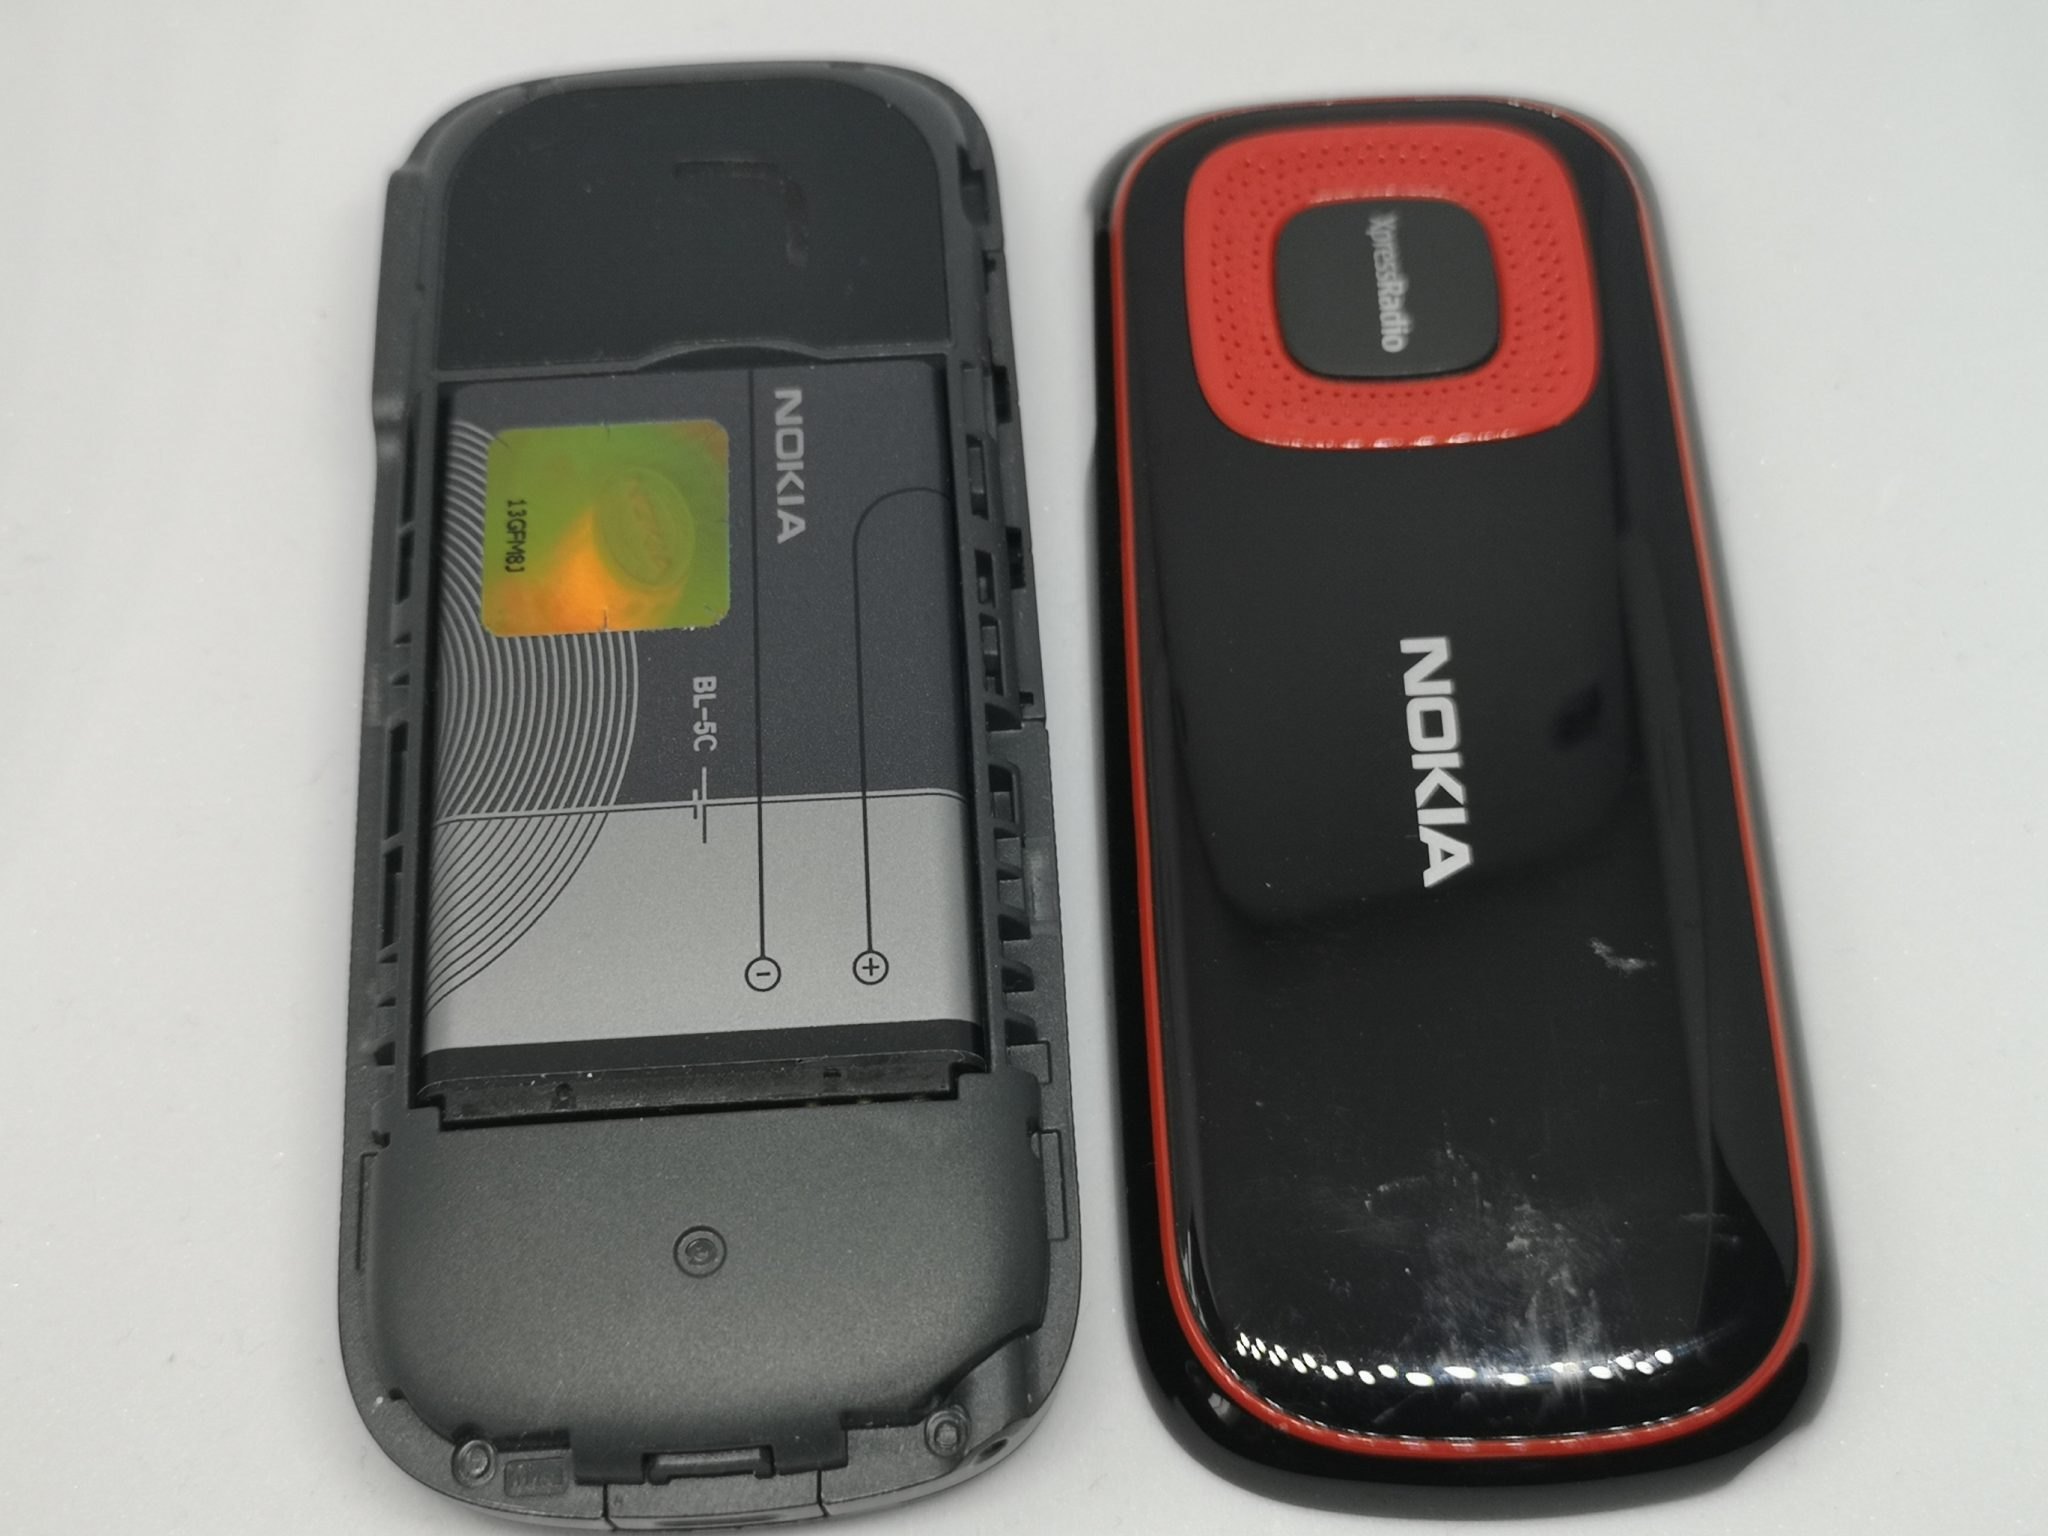 Nokia 5030 XpressRadio Vintage Mobile Phone Review - One of A Kind